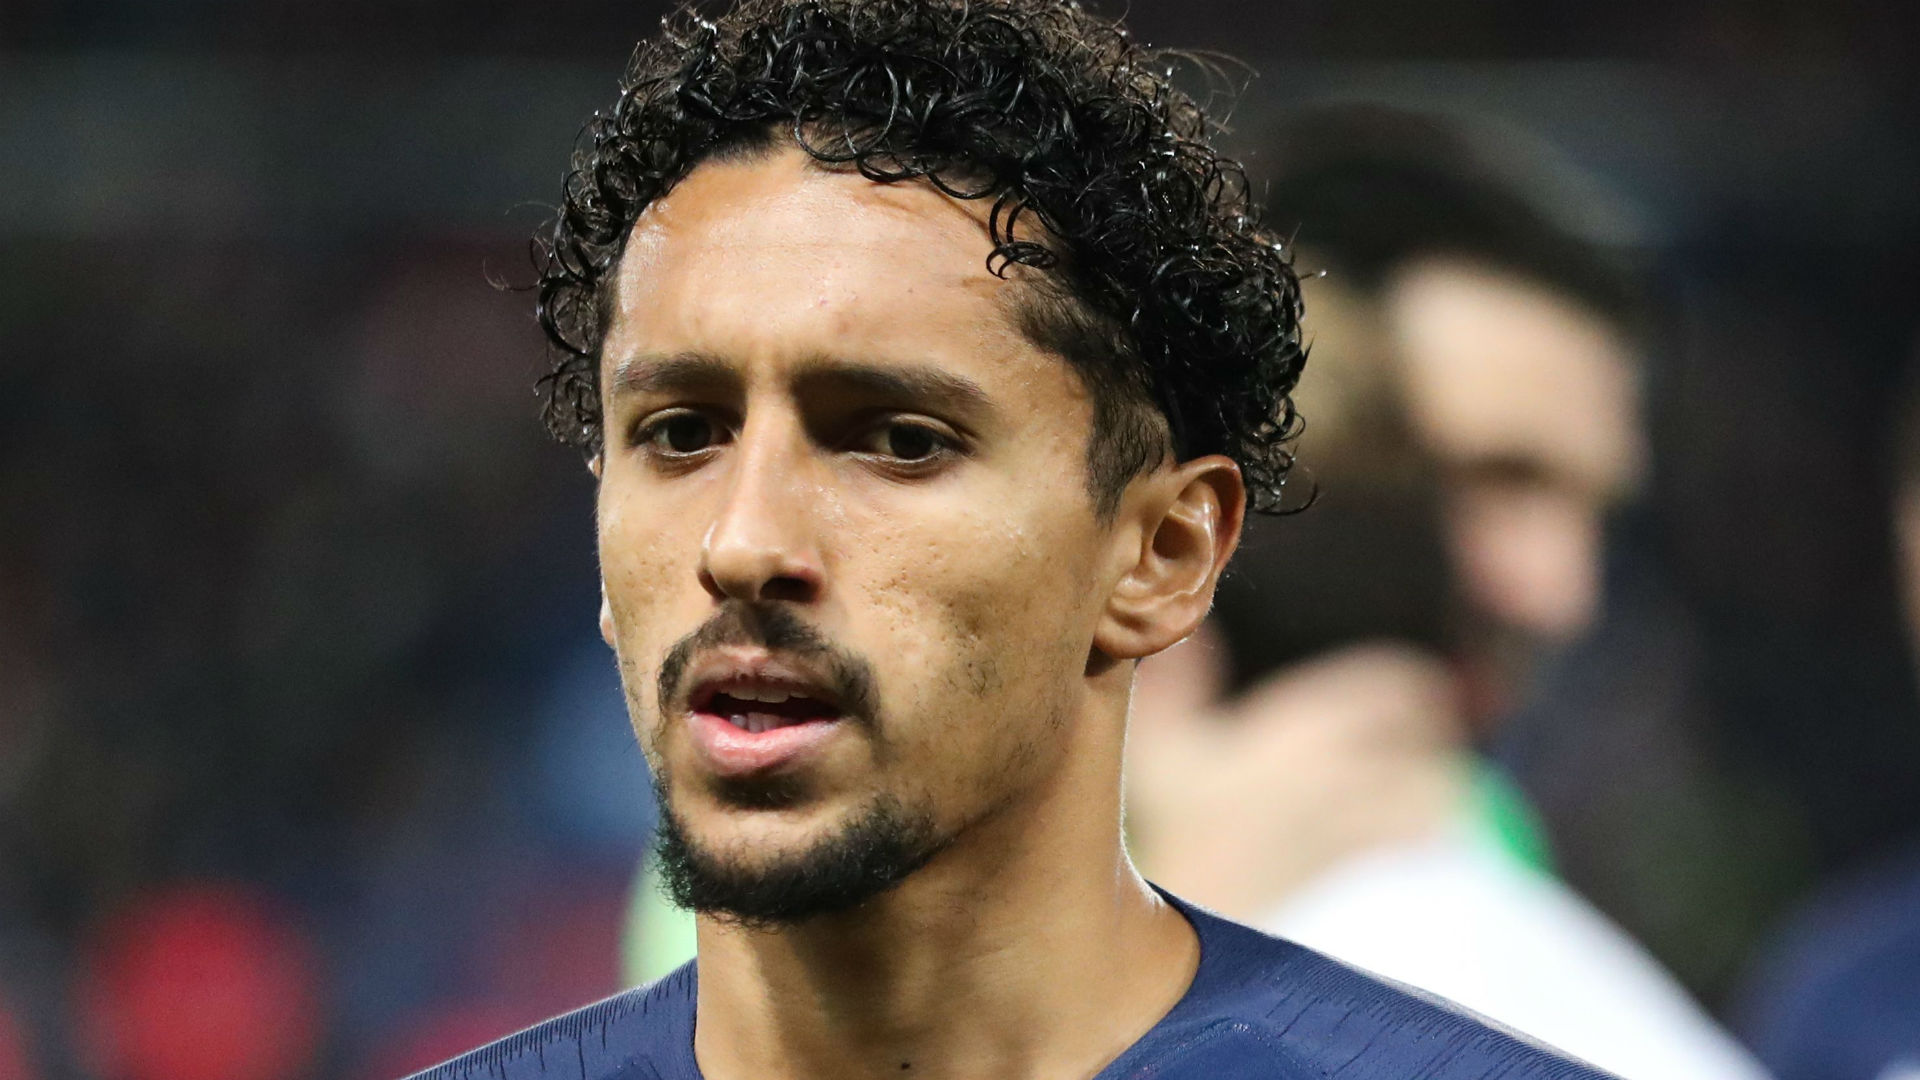 PSG condemn 'immature' criticism of Marquinhos after birth of his child